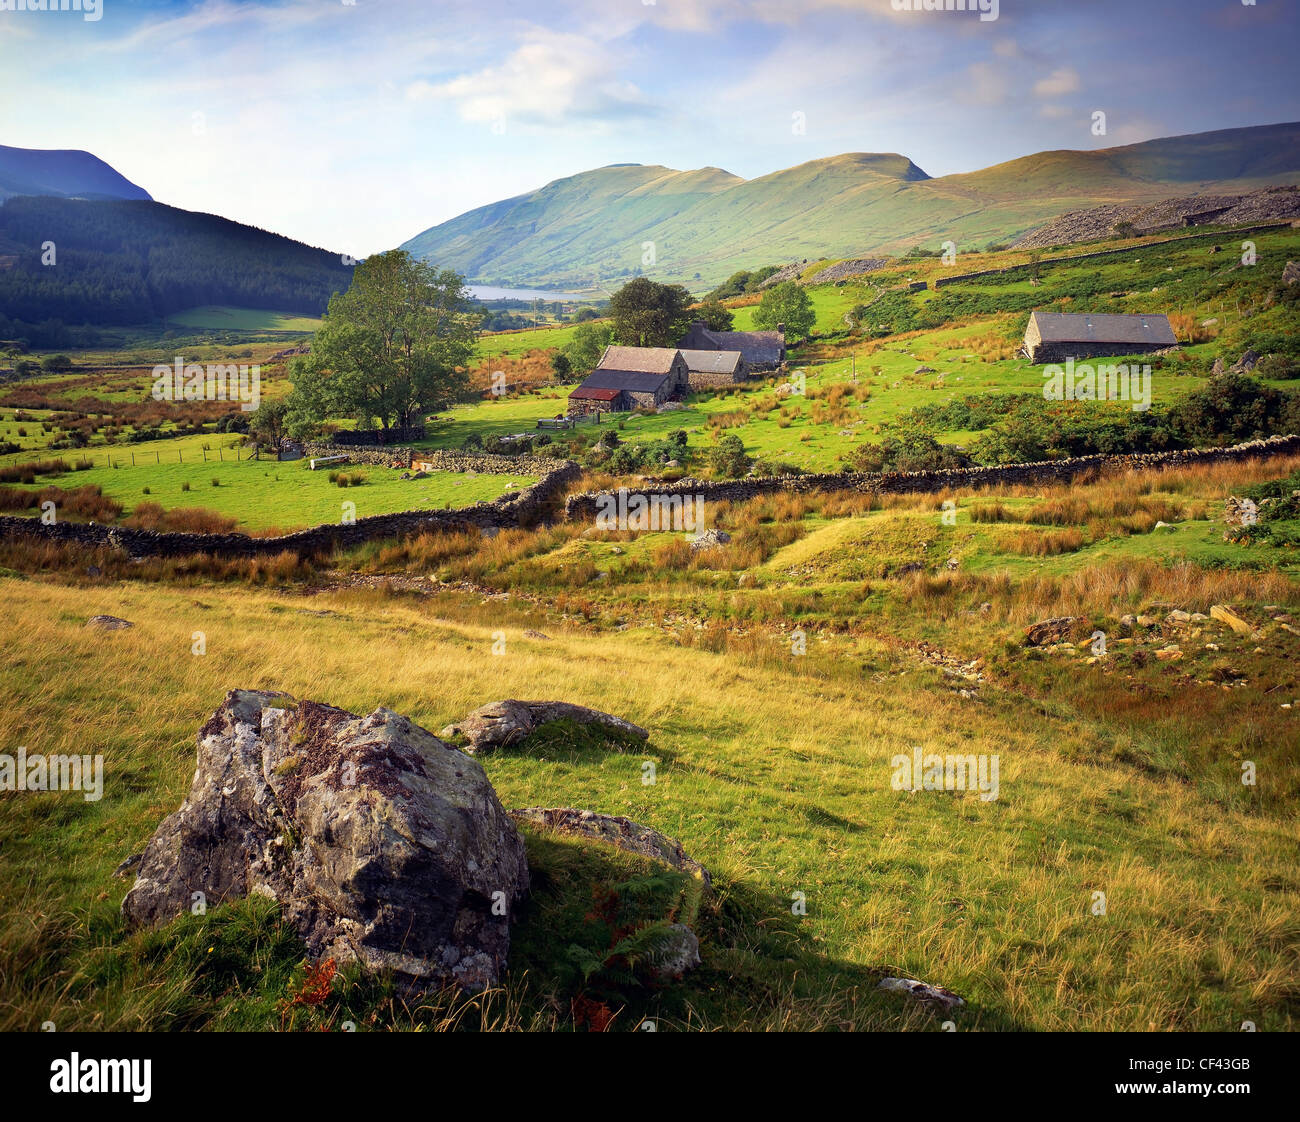 Looking west across farmland on the lower slopes of the Snowdonia mountains. - Stock Image